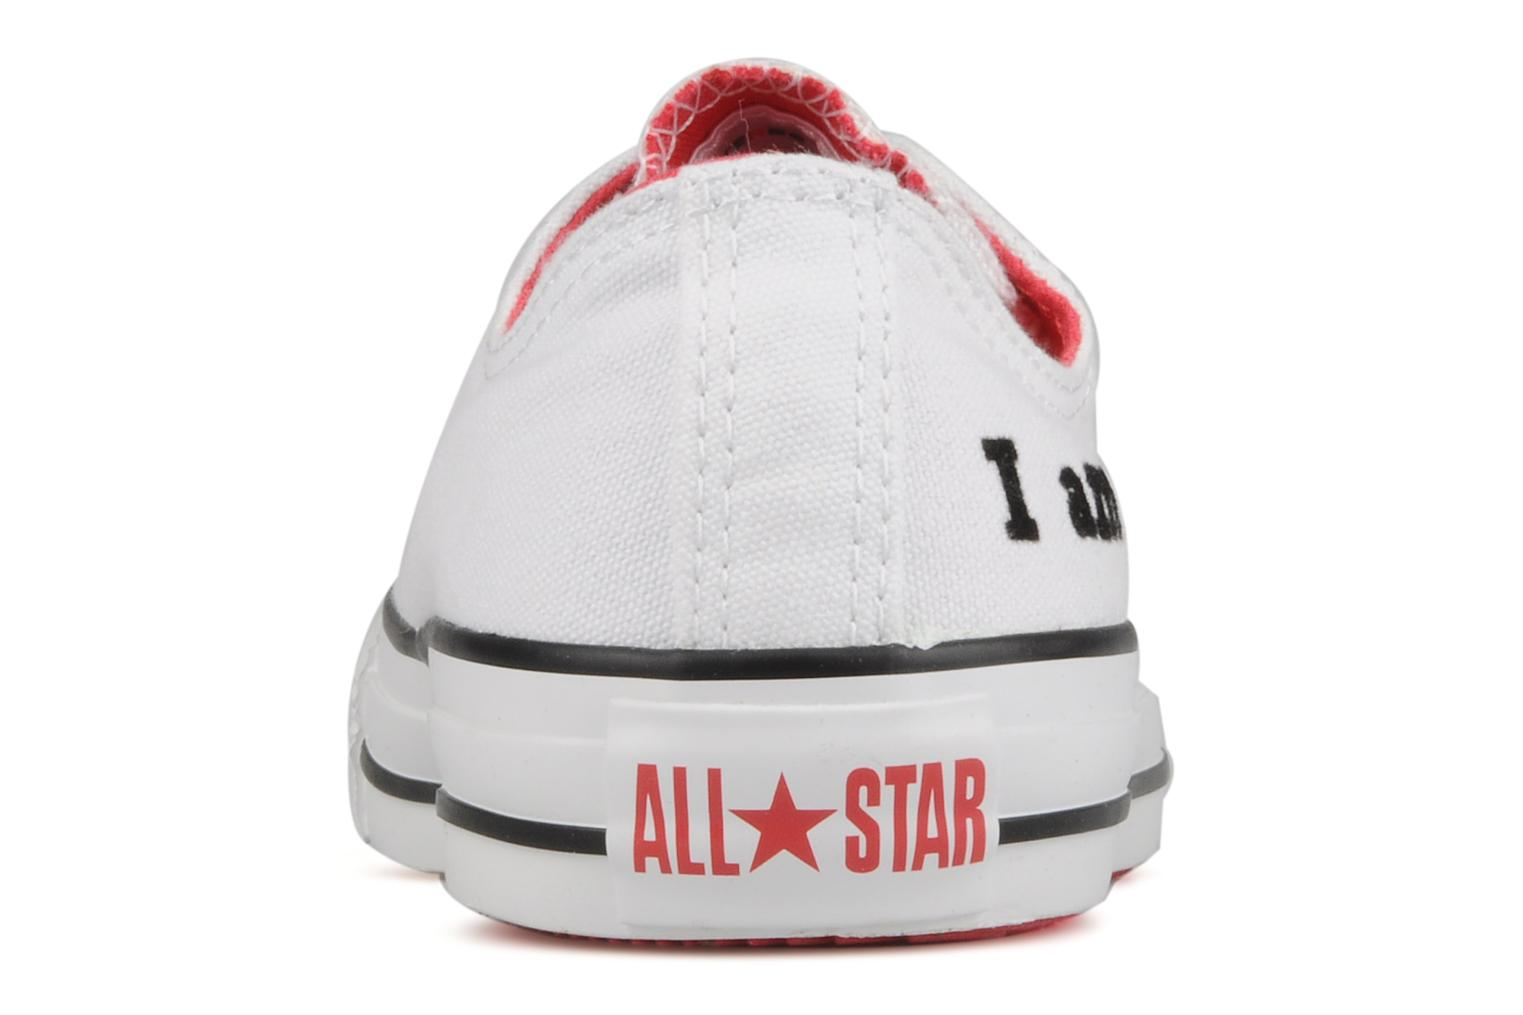 Trainers Converse Chuck taylor all star red i am … ox w White view from the right